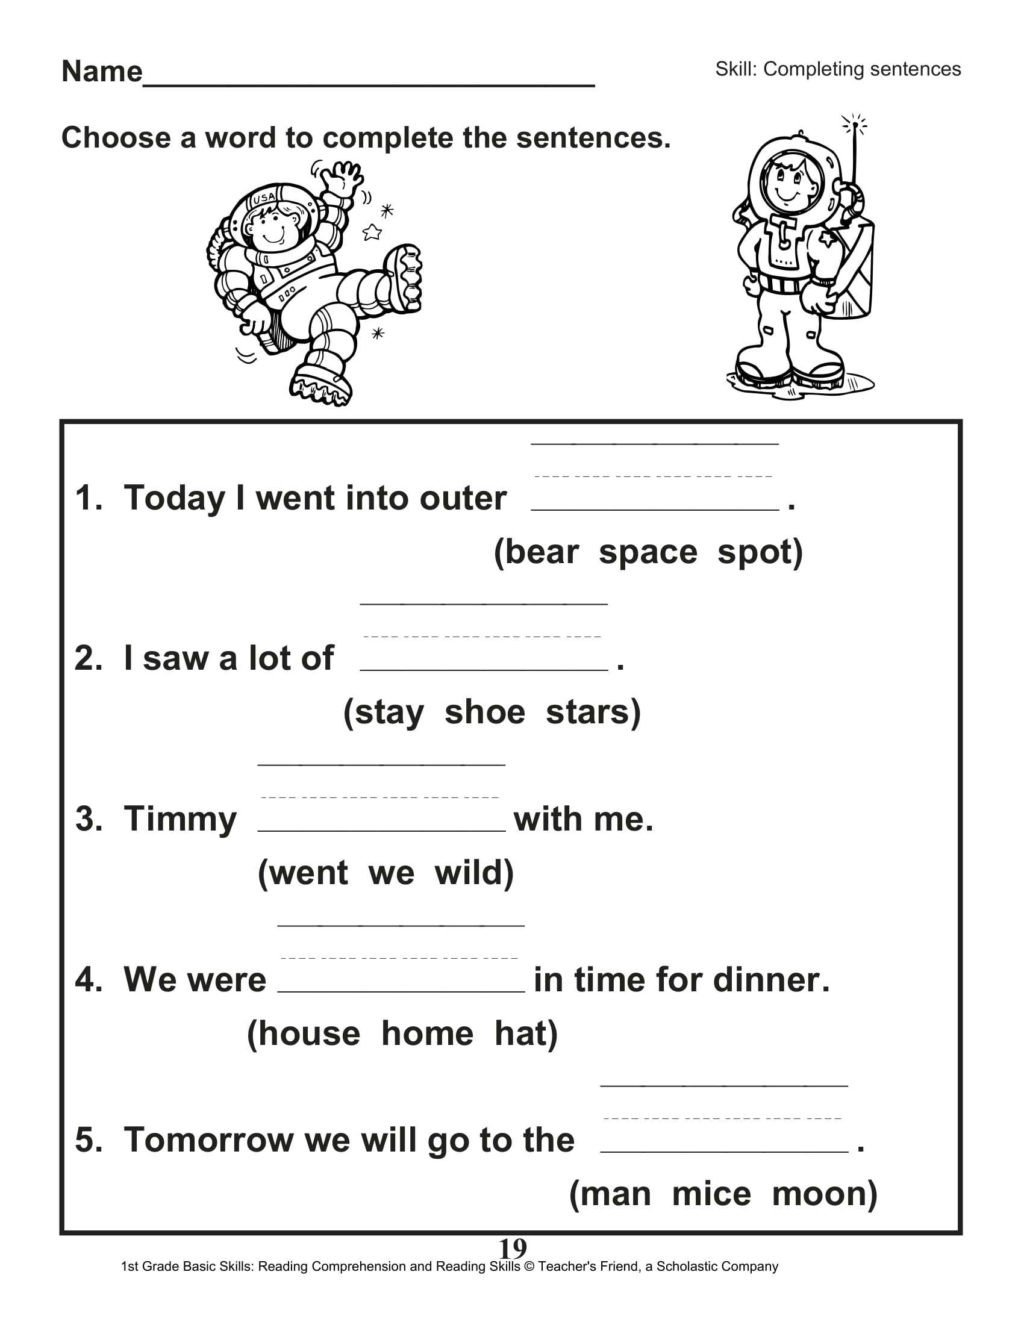 Complete Sentences Worksheet 1st Grade Worksheet 1st Gradeeet Reading for Educations Free and